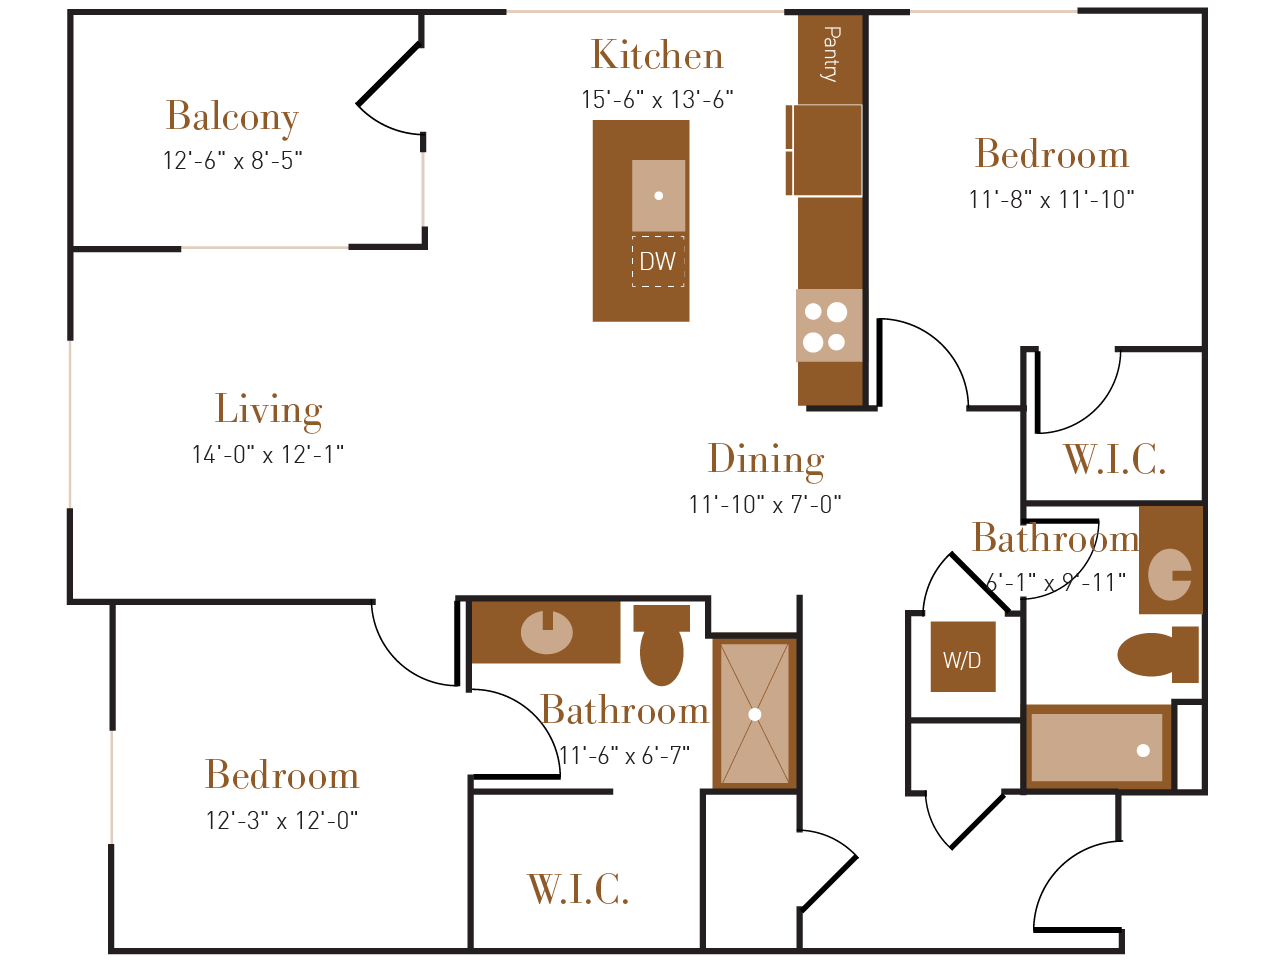 B Three floor plan diagram. Two bedrooms, two bathrooms, an open kitchen dining and living area, a balcony, and a washer dryer.